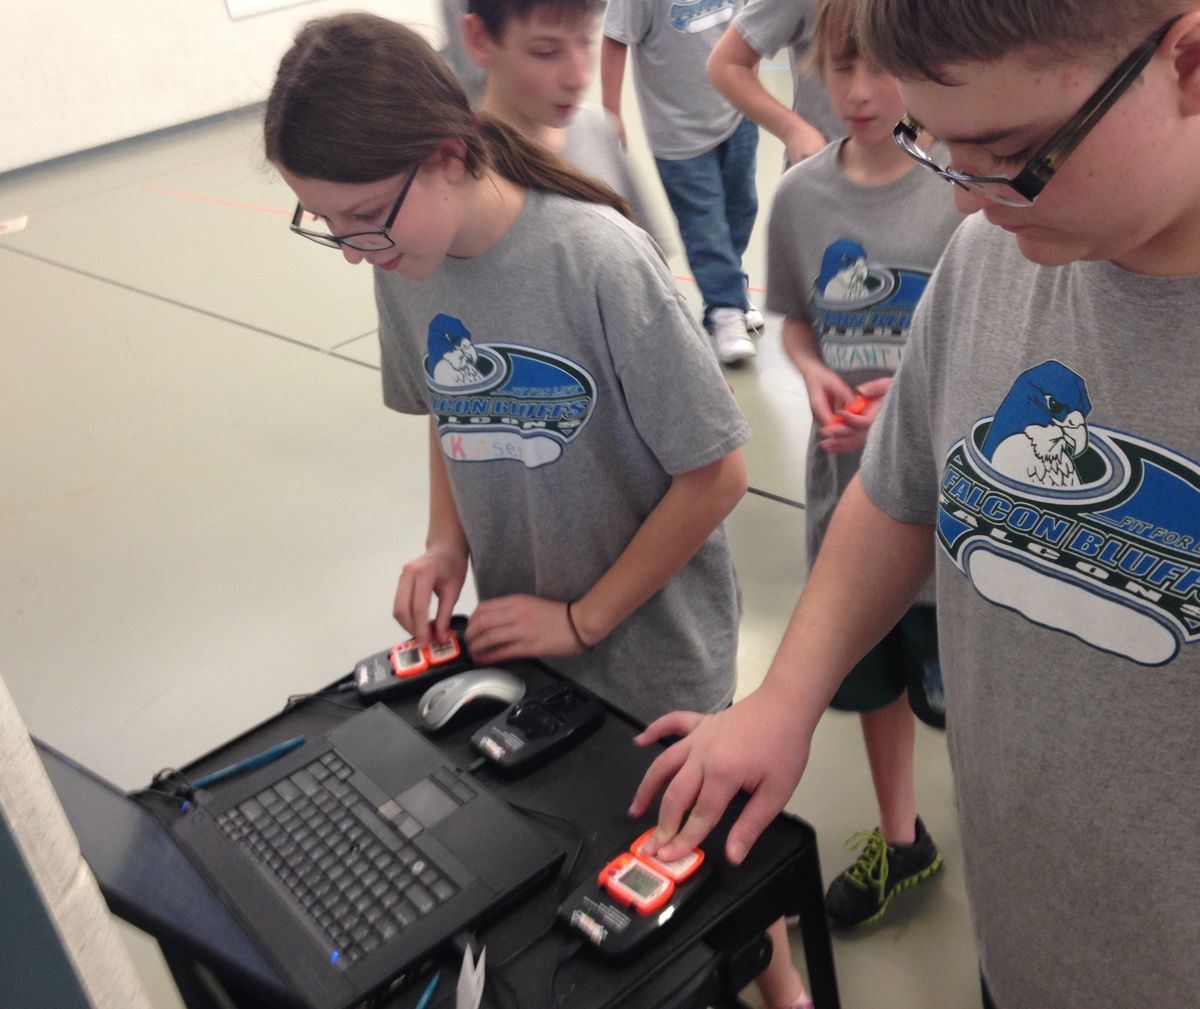 Two students in Allyn Atadero's P.E. class plug their pedometers into docking stations after class so their MVPA numbers will be recorded.